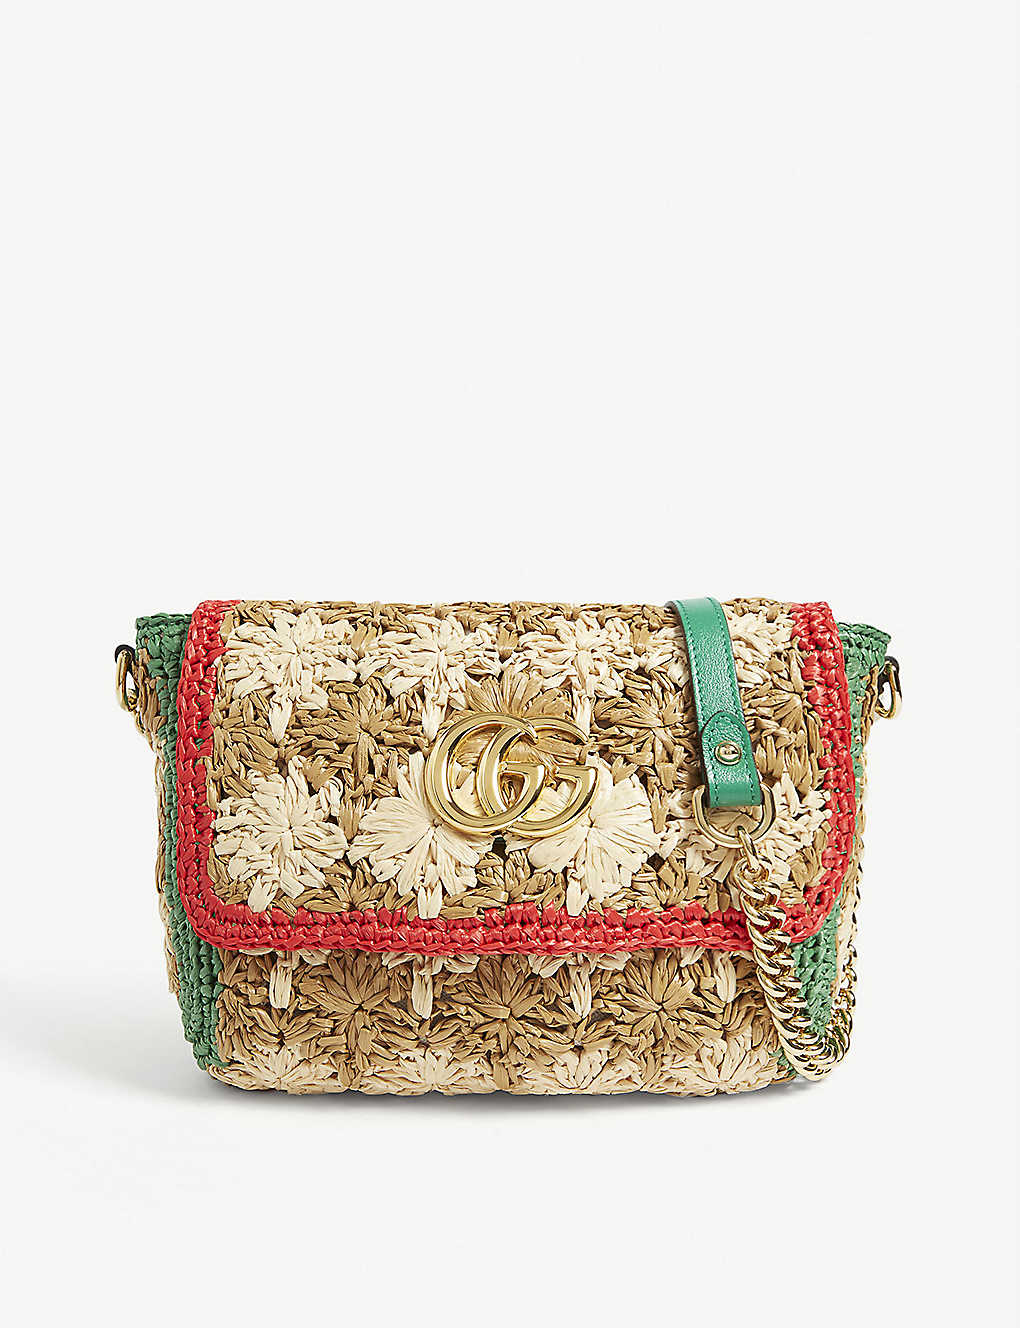 GUCCI: Raffia-effect Marmont shoulder bag